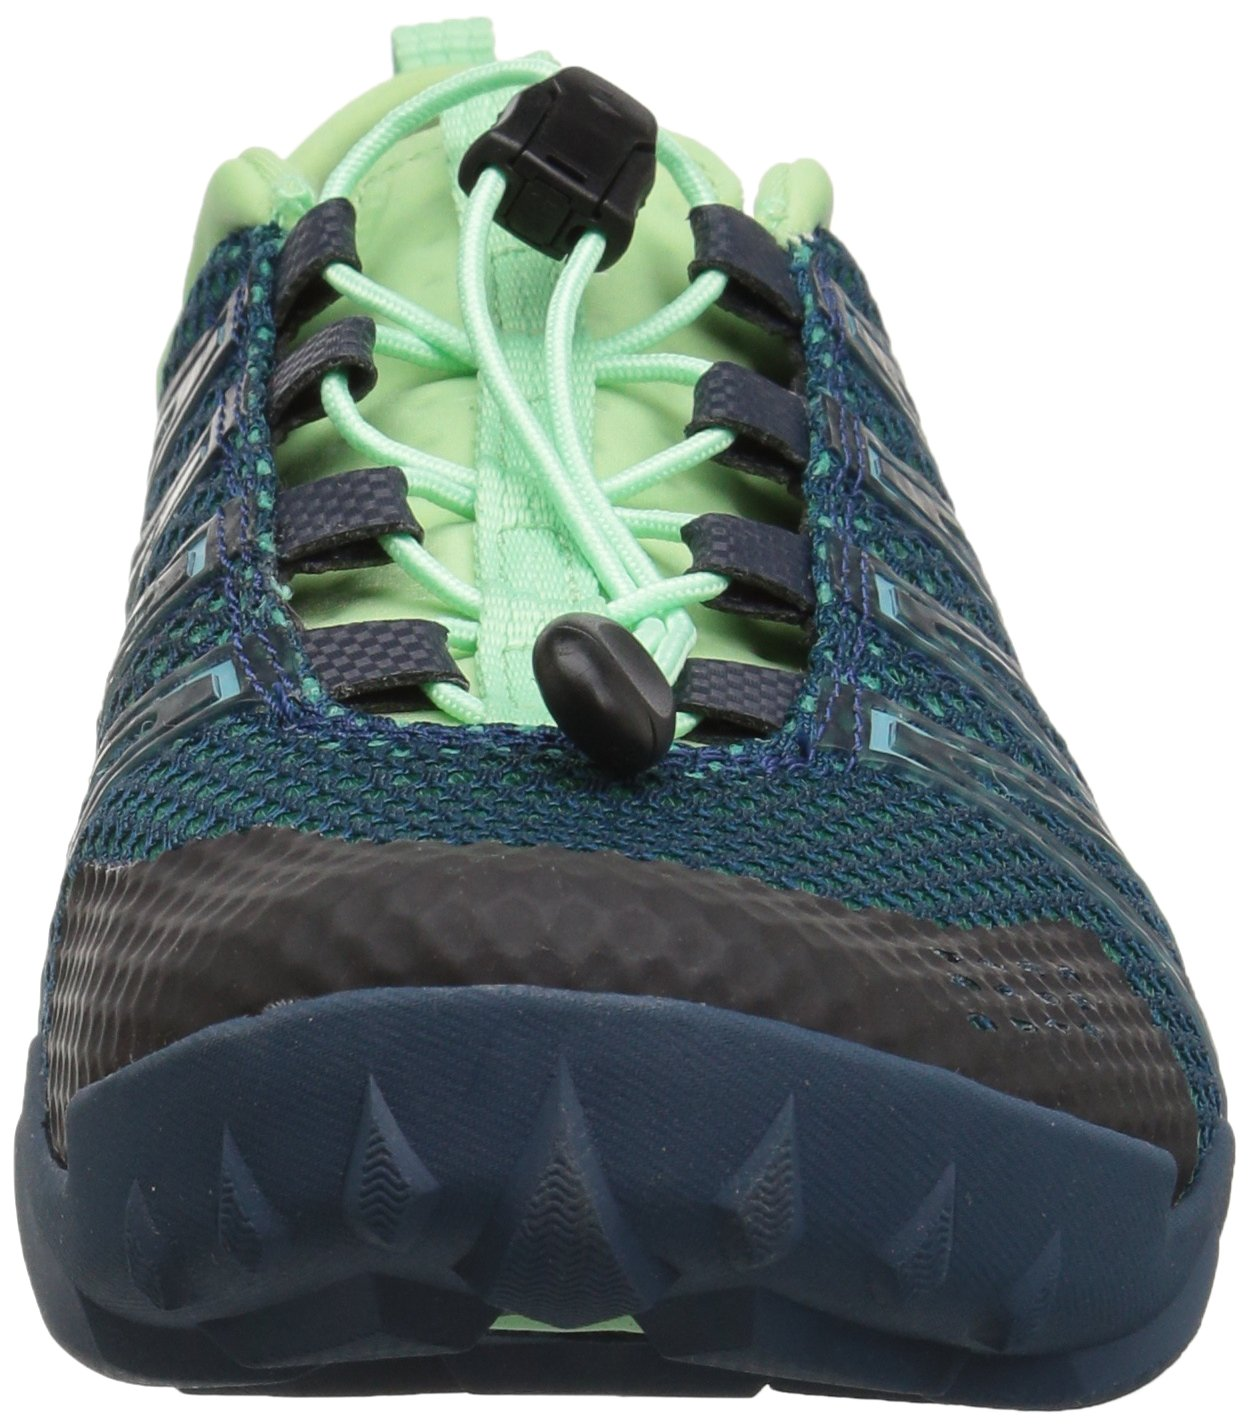 Merrell Women's Tetrex Water Shoes B071VTTJZF 8.5 B(M) US|Legion Blue